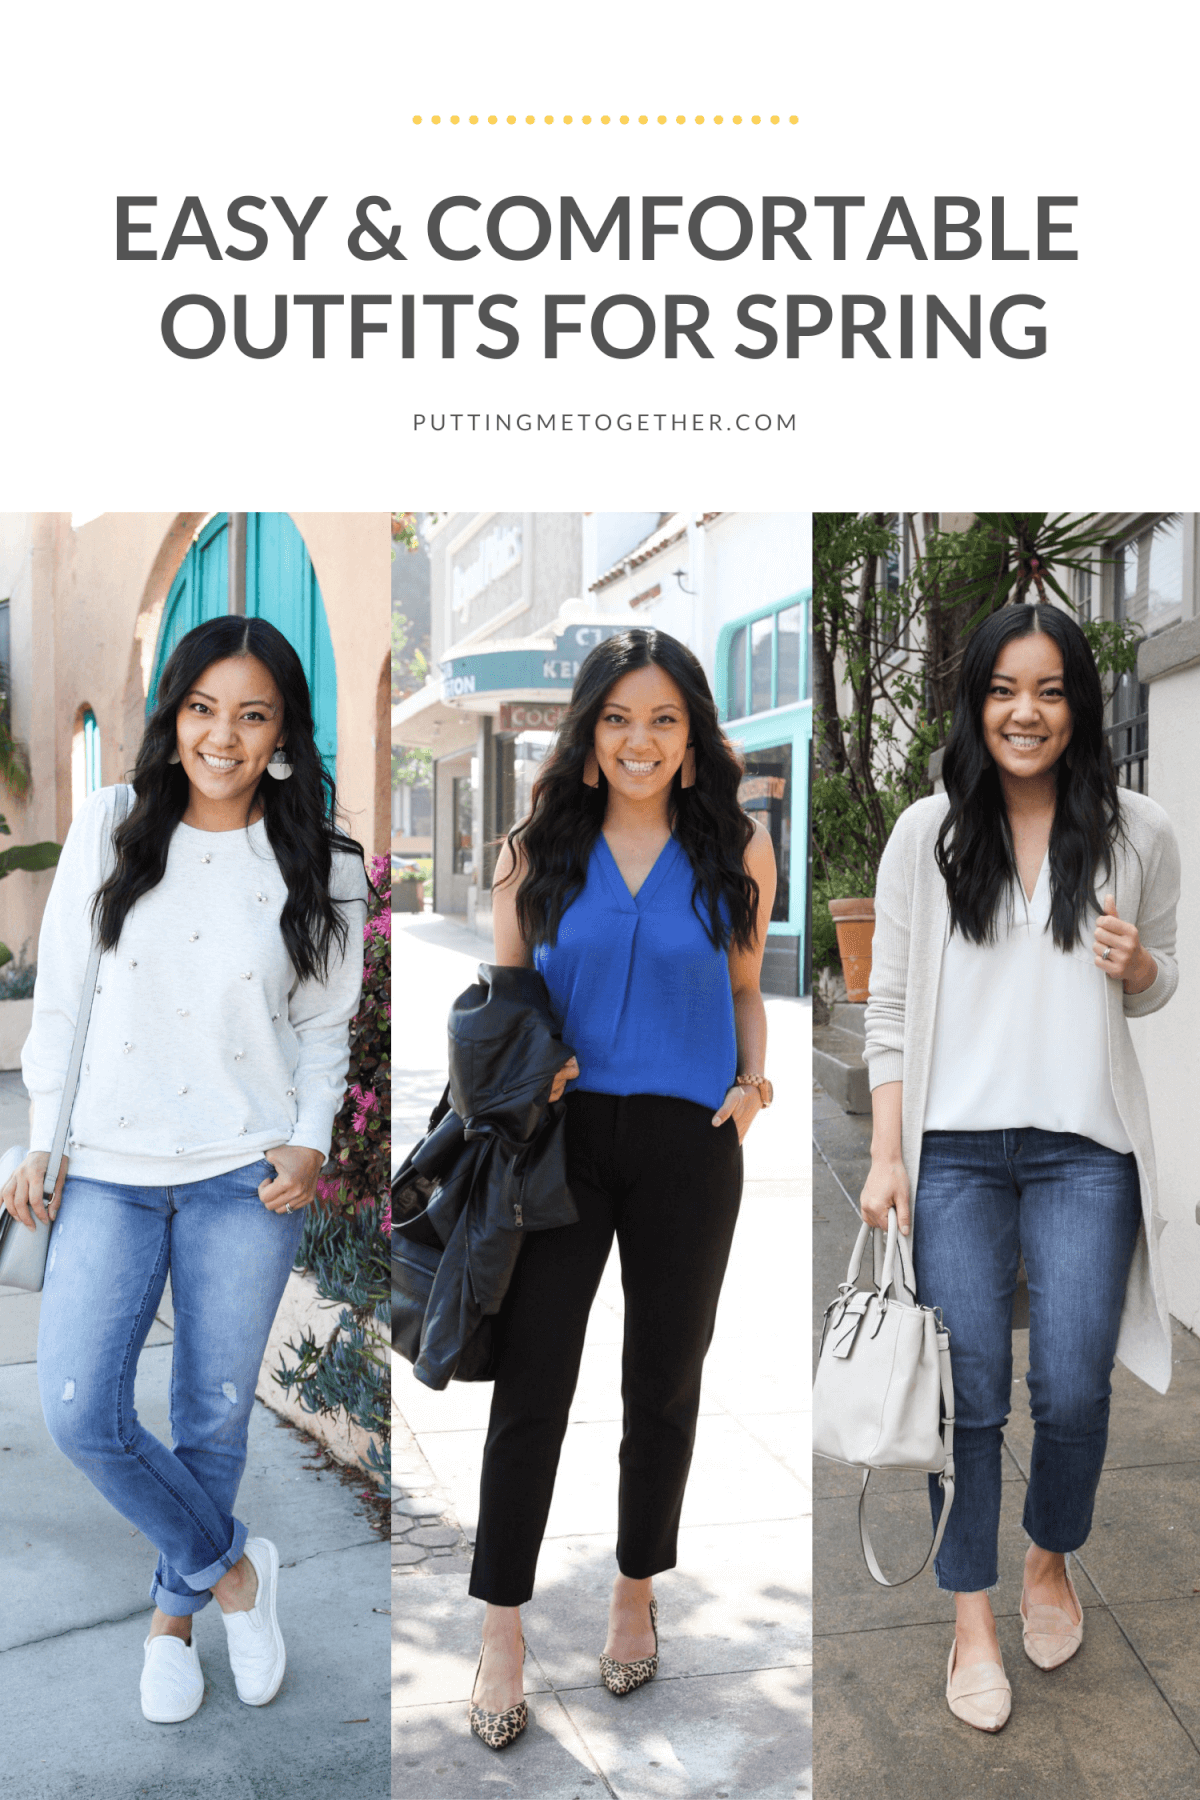 Easy & Comfortable Outfits for Spring